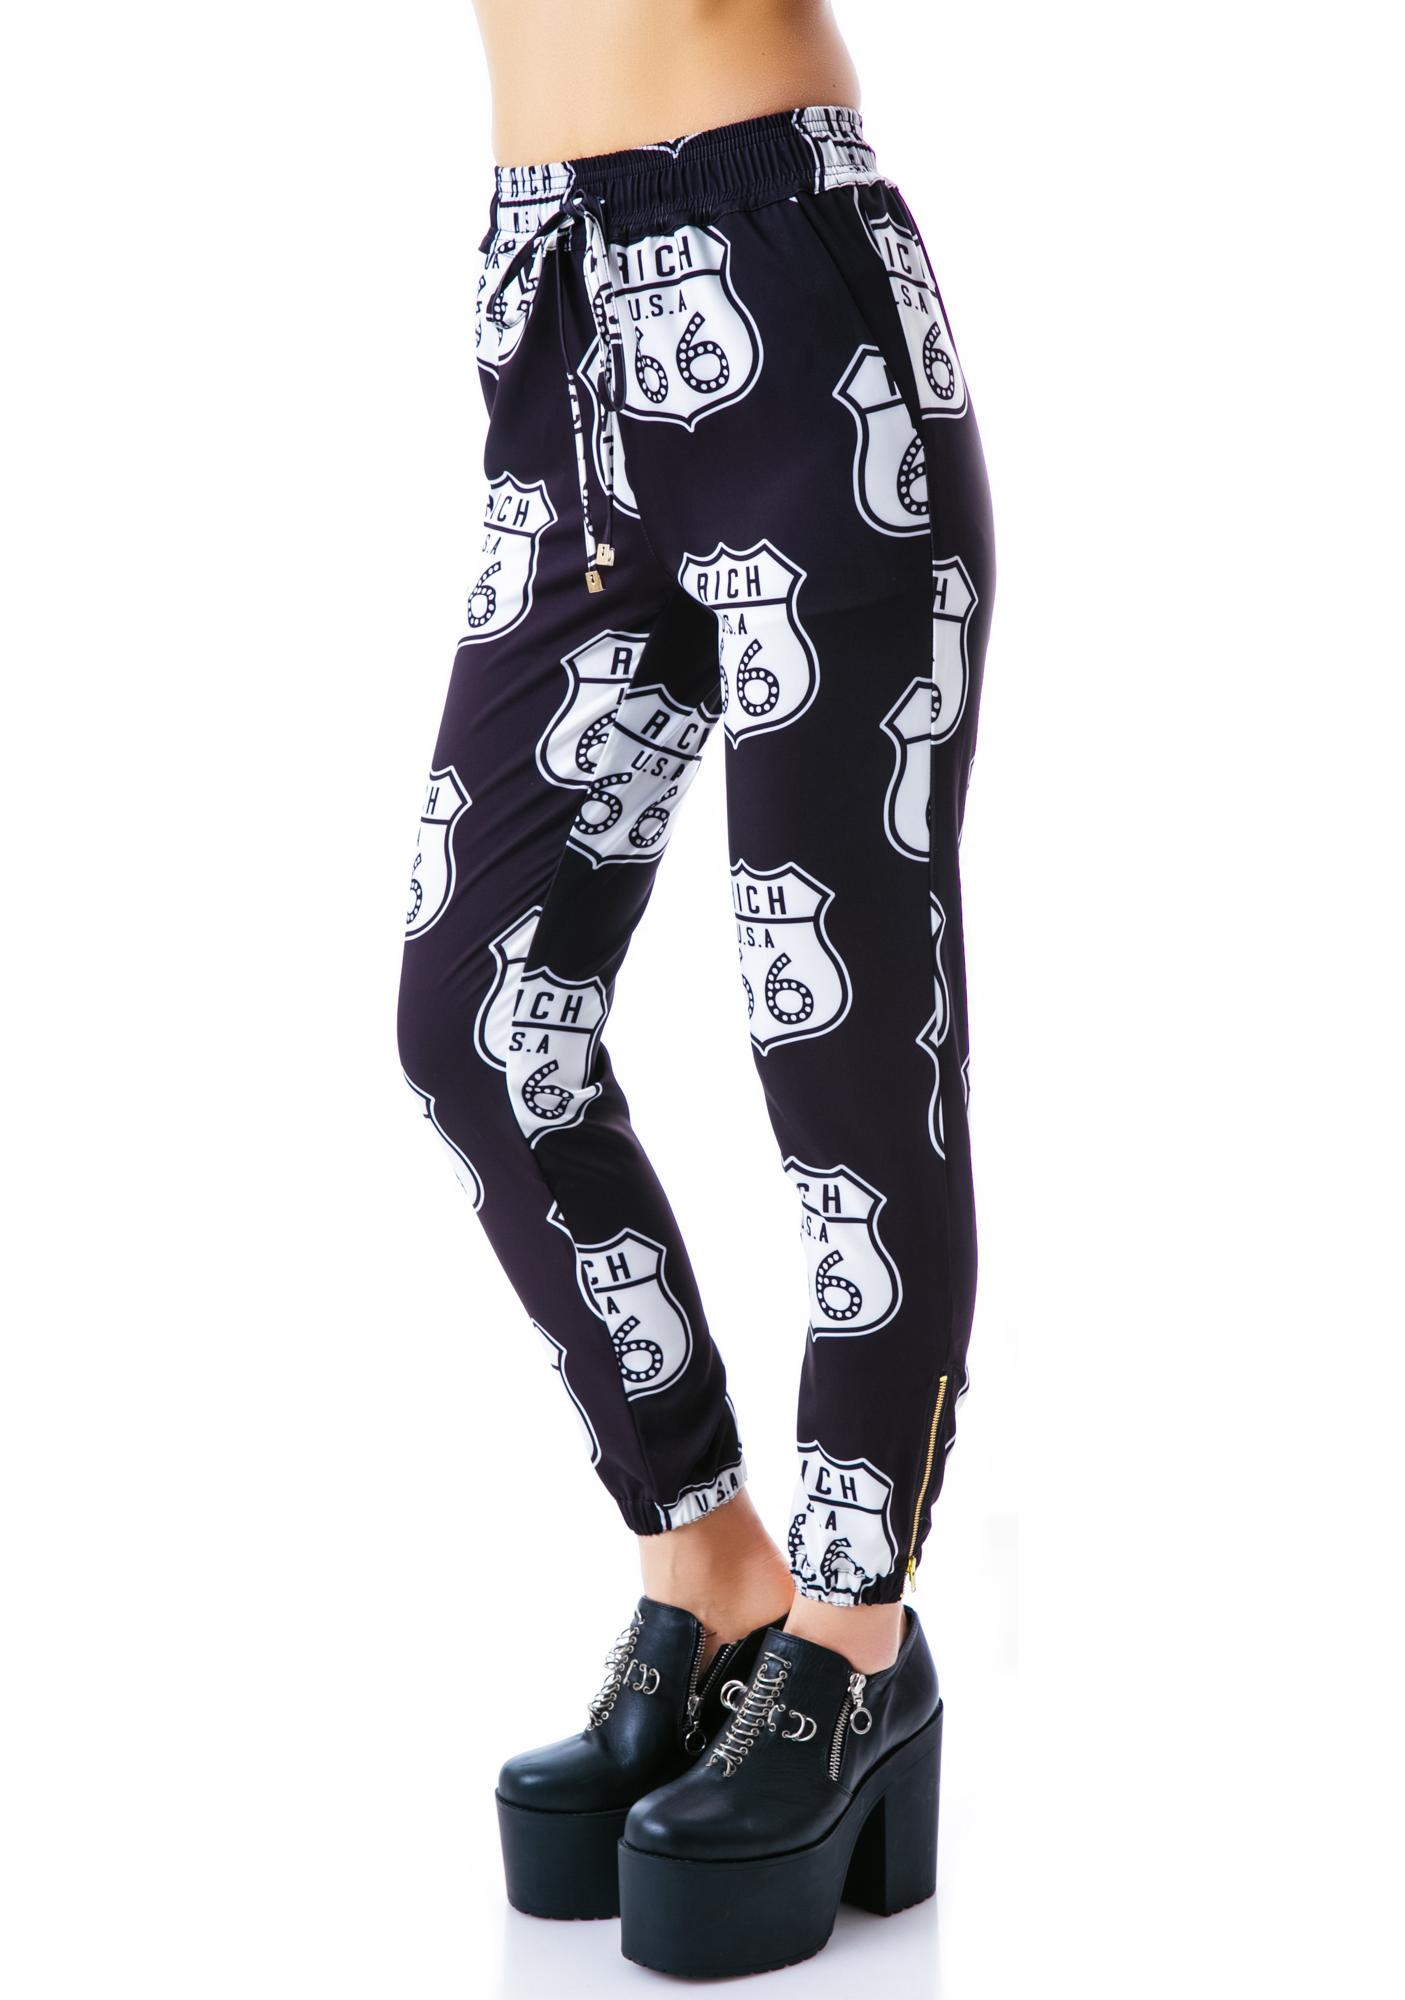 Joyrich Rich 66 Pants